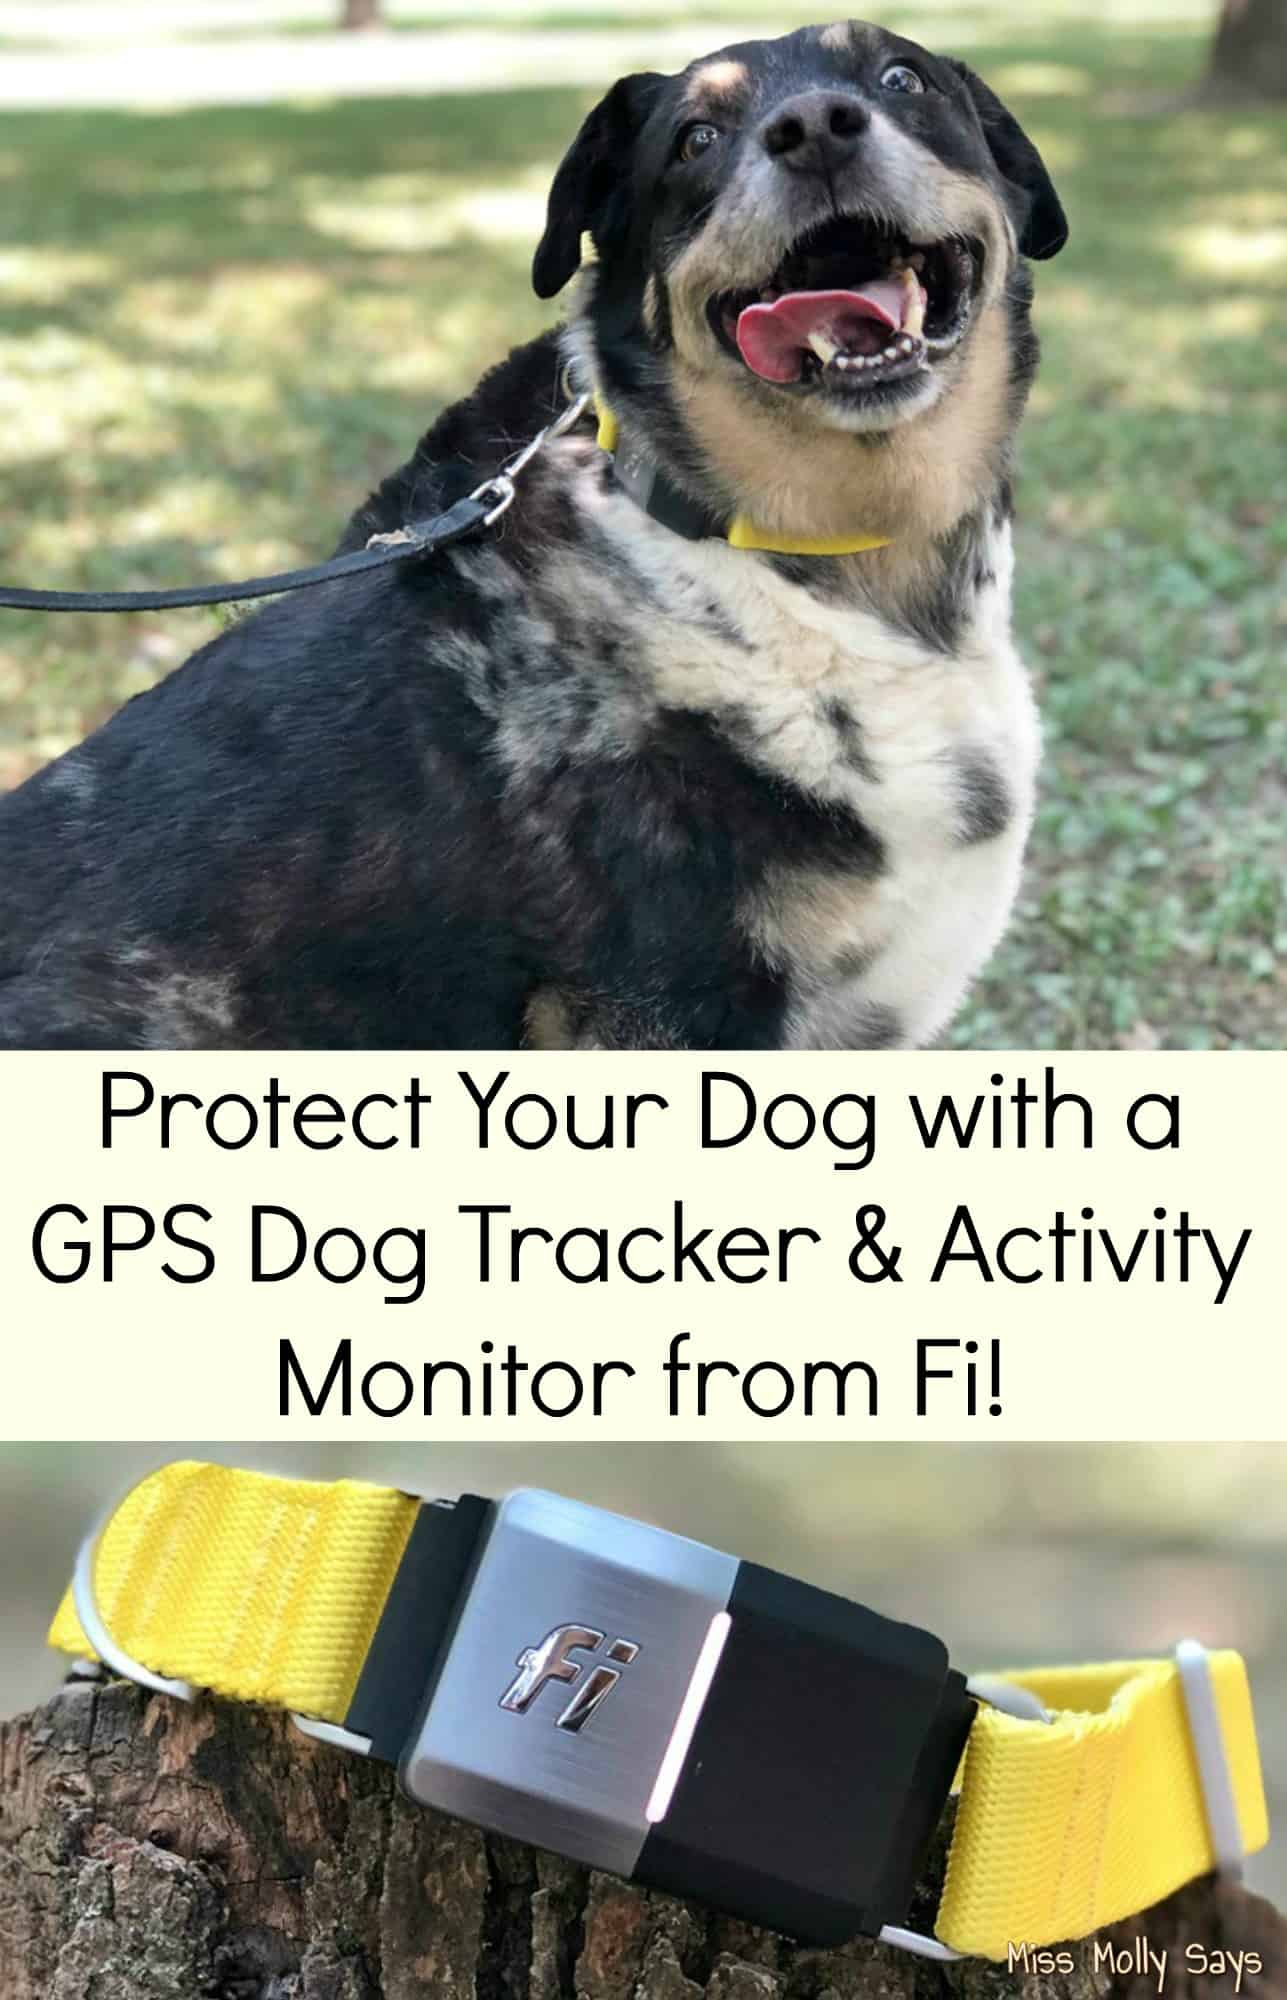 Protect Your Dog with a GPS Dog Tracker & Activity Monitor from Fi!